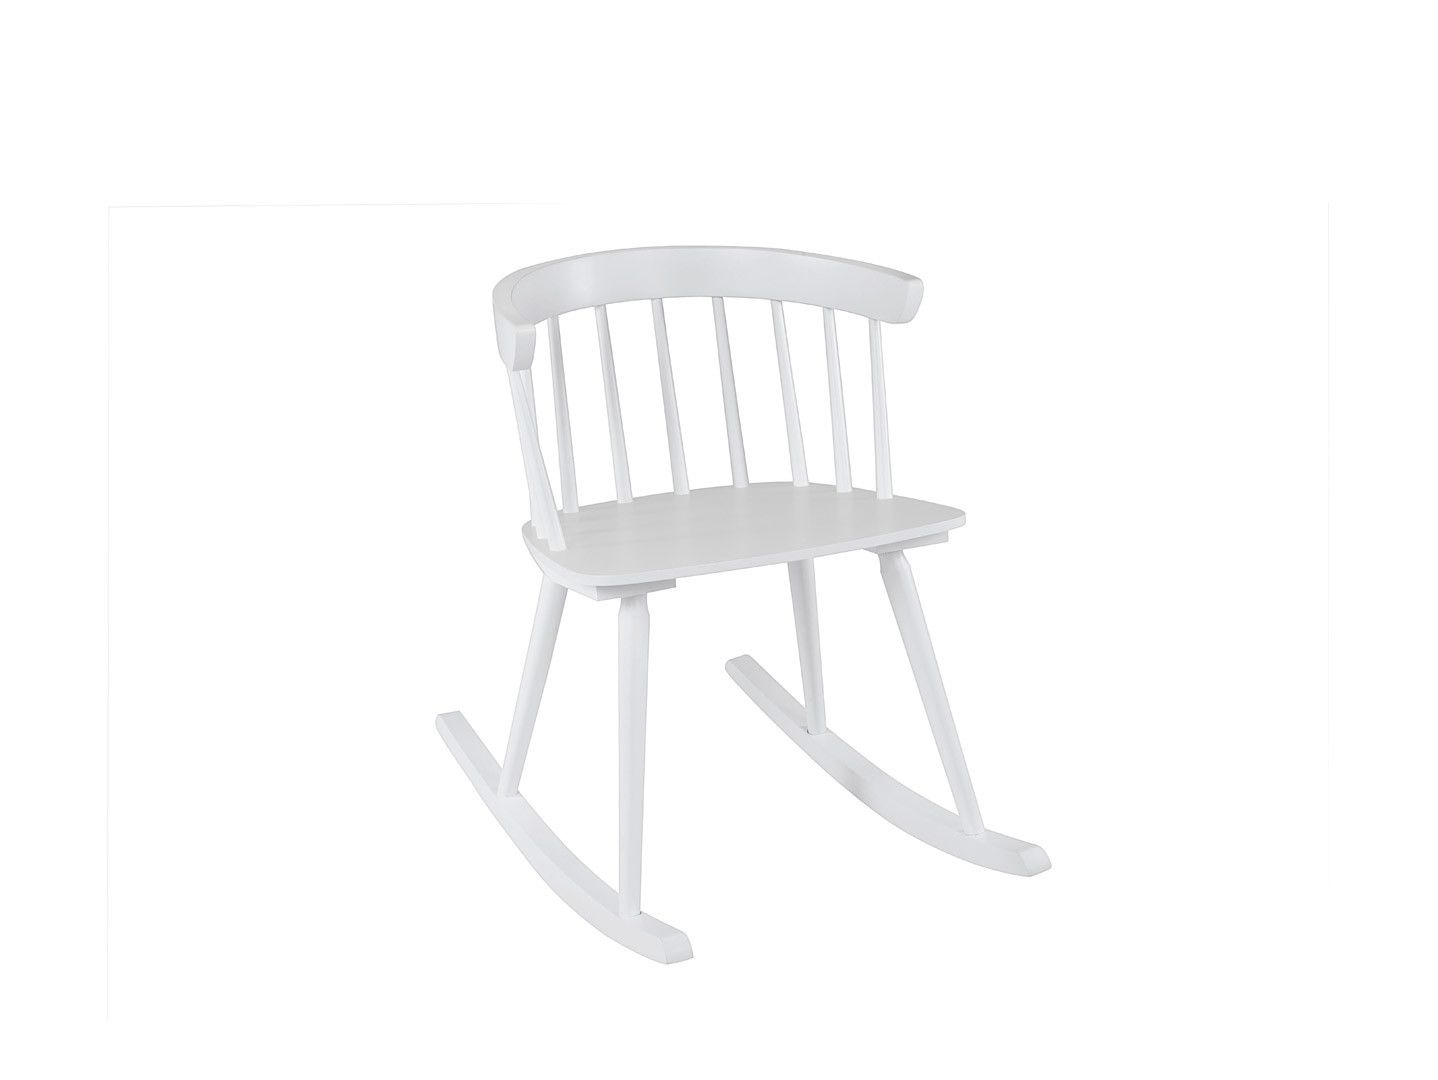 Mara Sedie ~ 30 best stoły i krzesła images on pinterest clarks dining chair